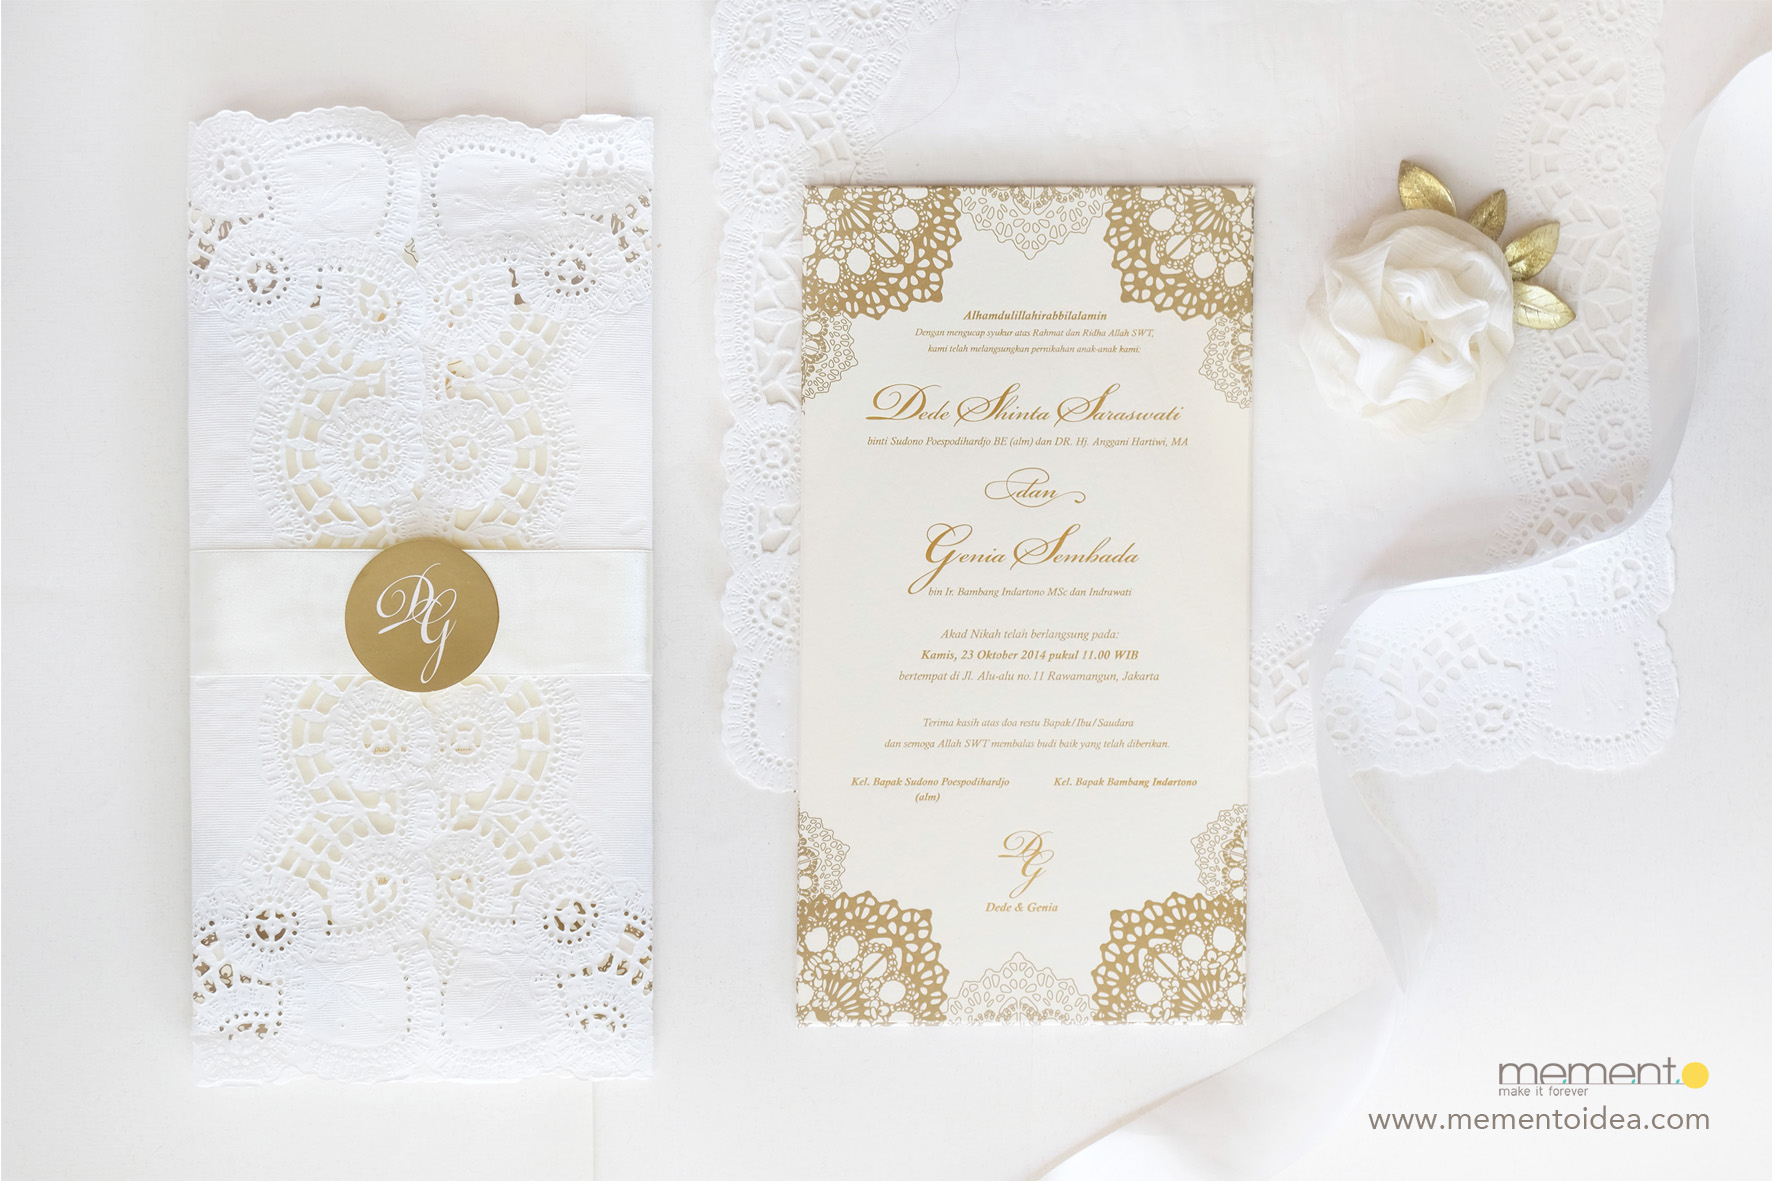 What You Need to Know of Designing and Sending Wedding Invitations Image 1